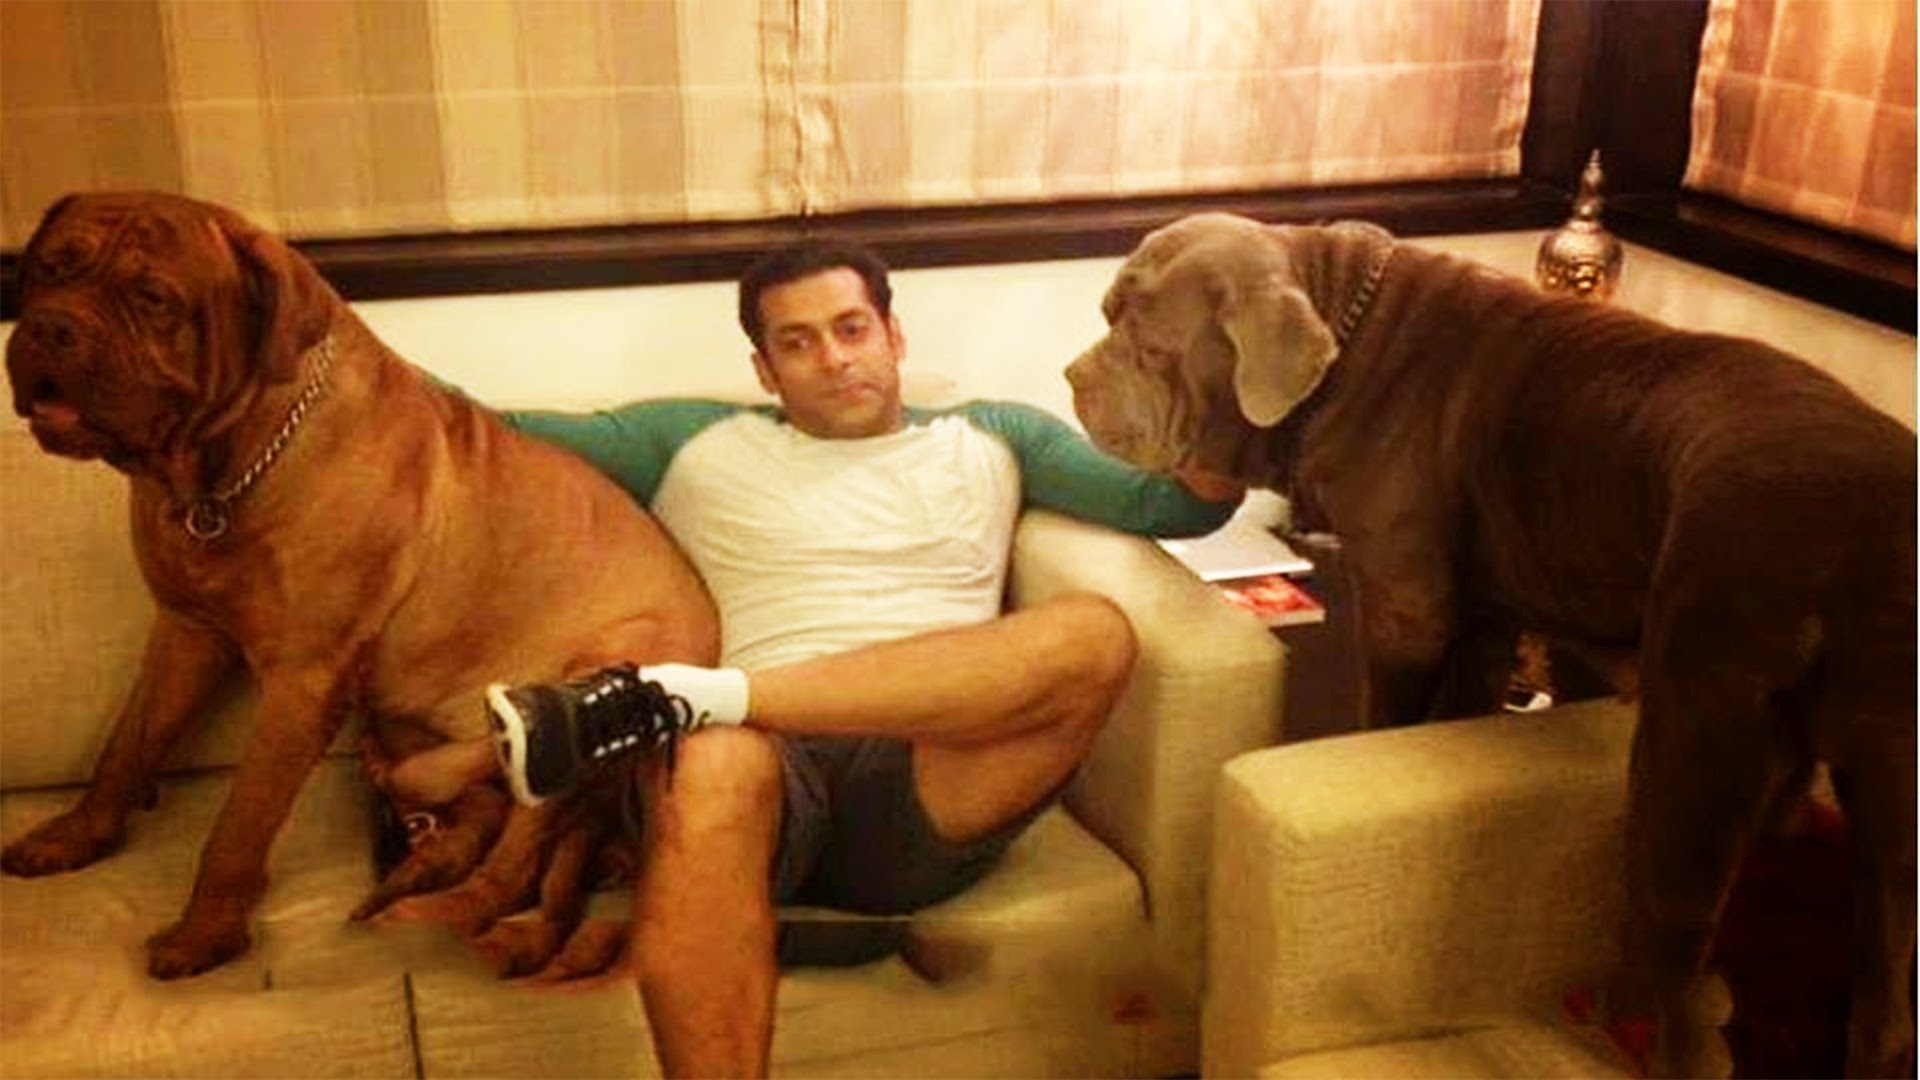 salman-khan-youtube-photo-for-InUth.com